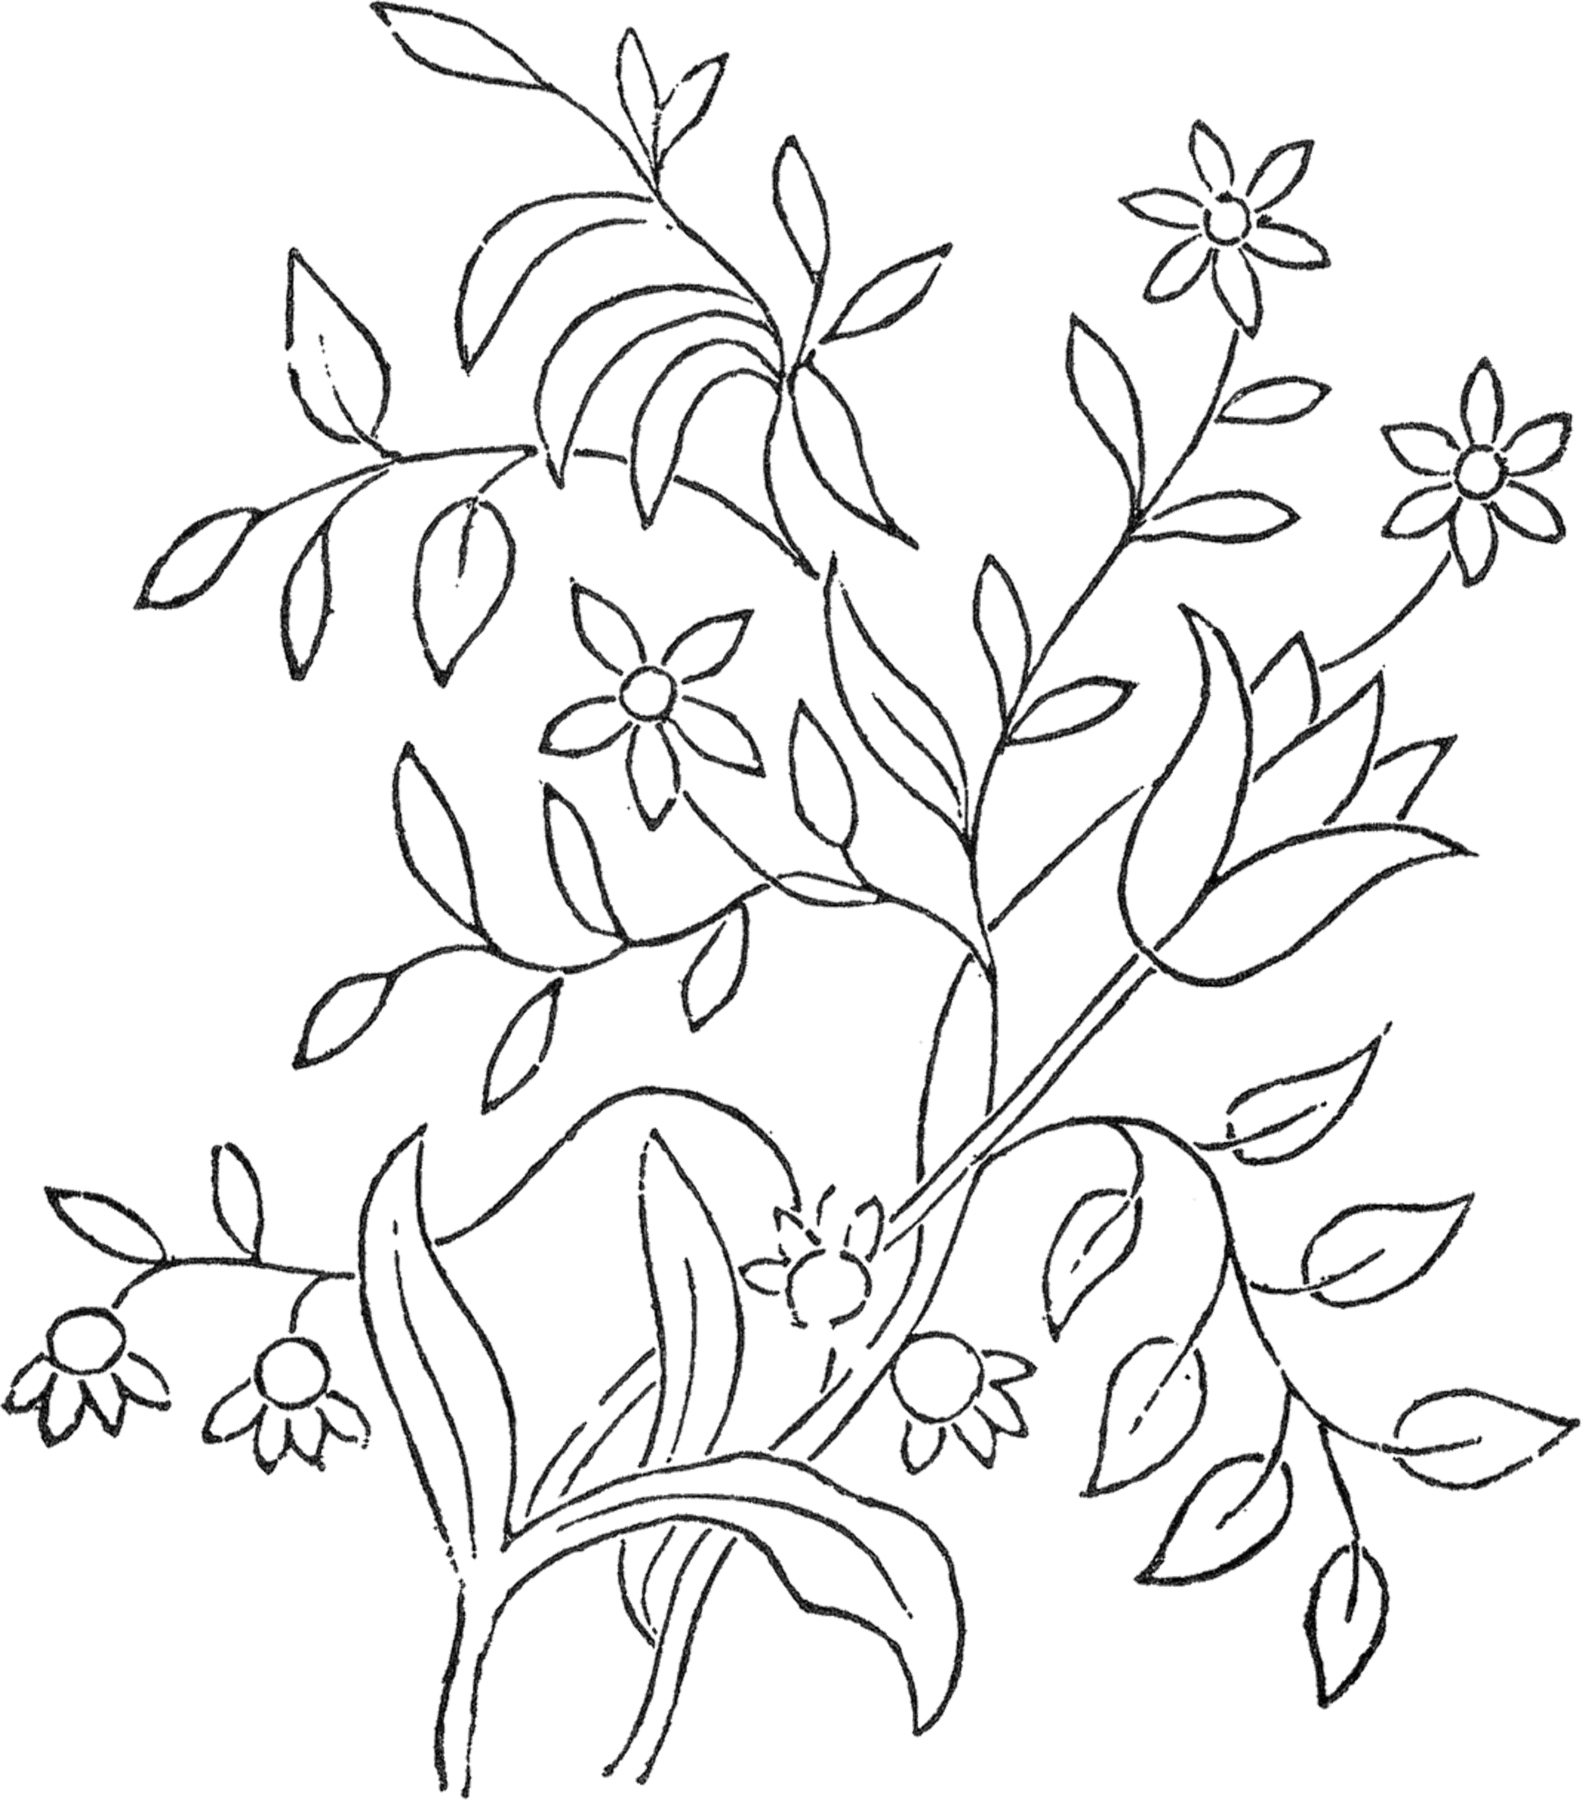 Flower Embroidery Pattern // The Graphics Fairy